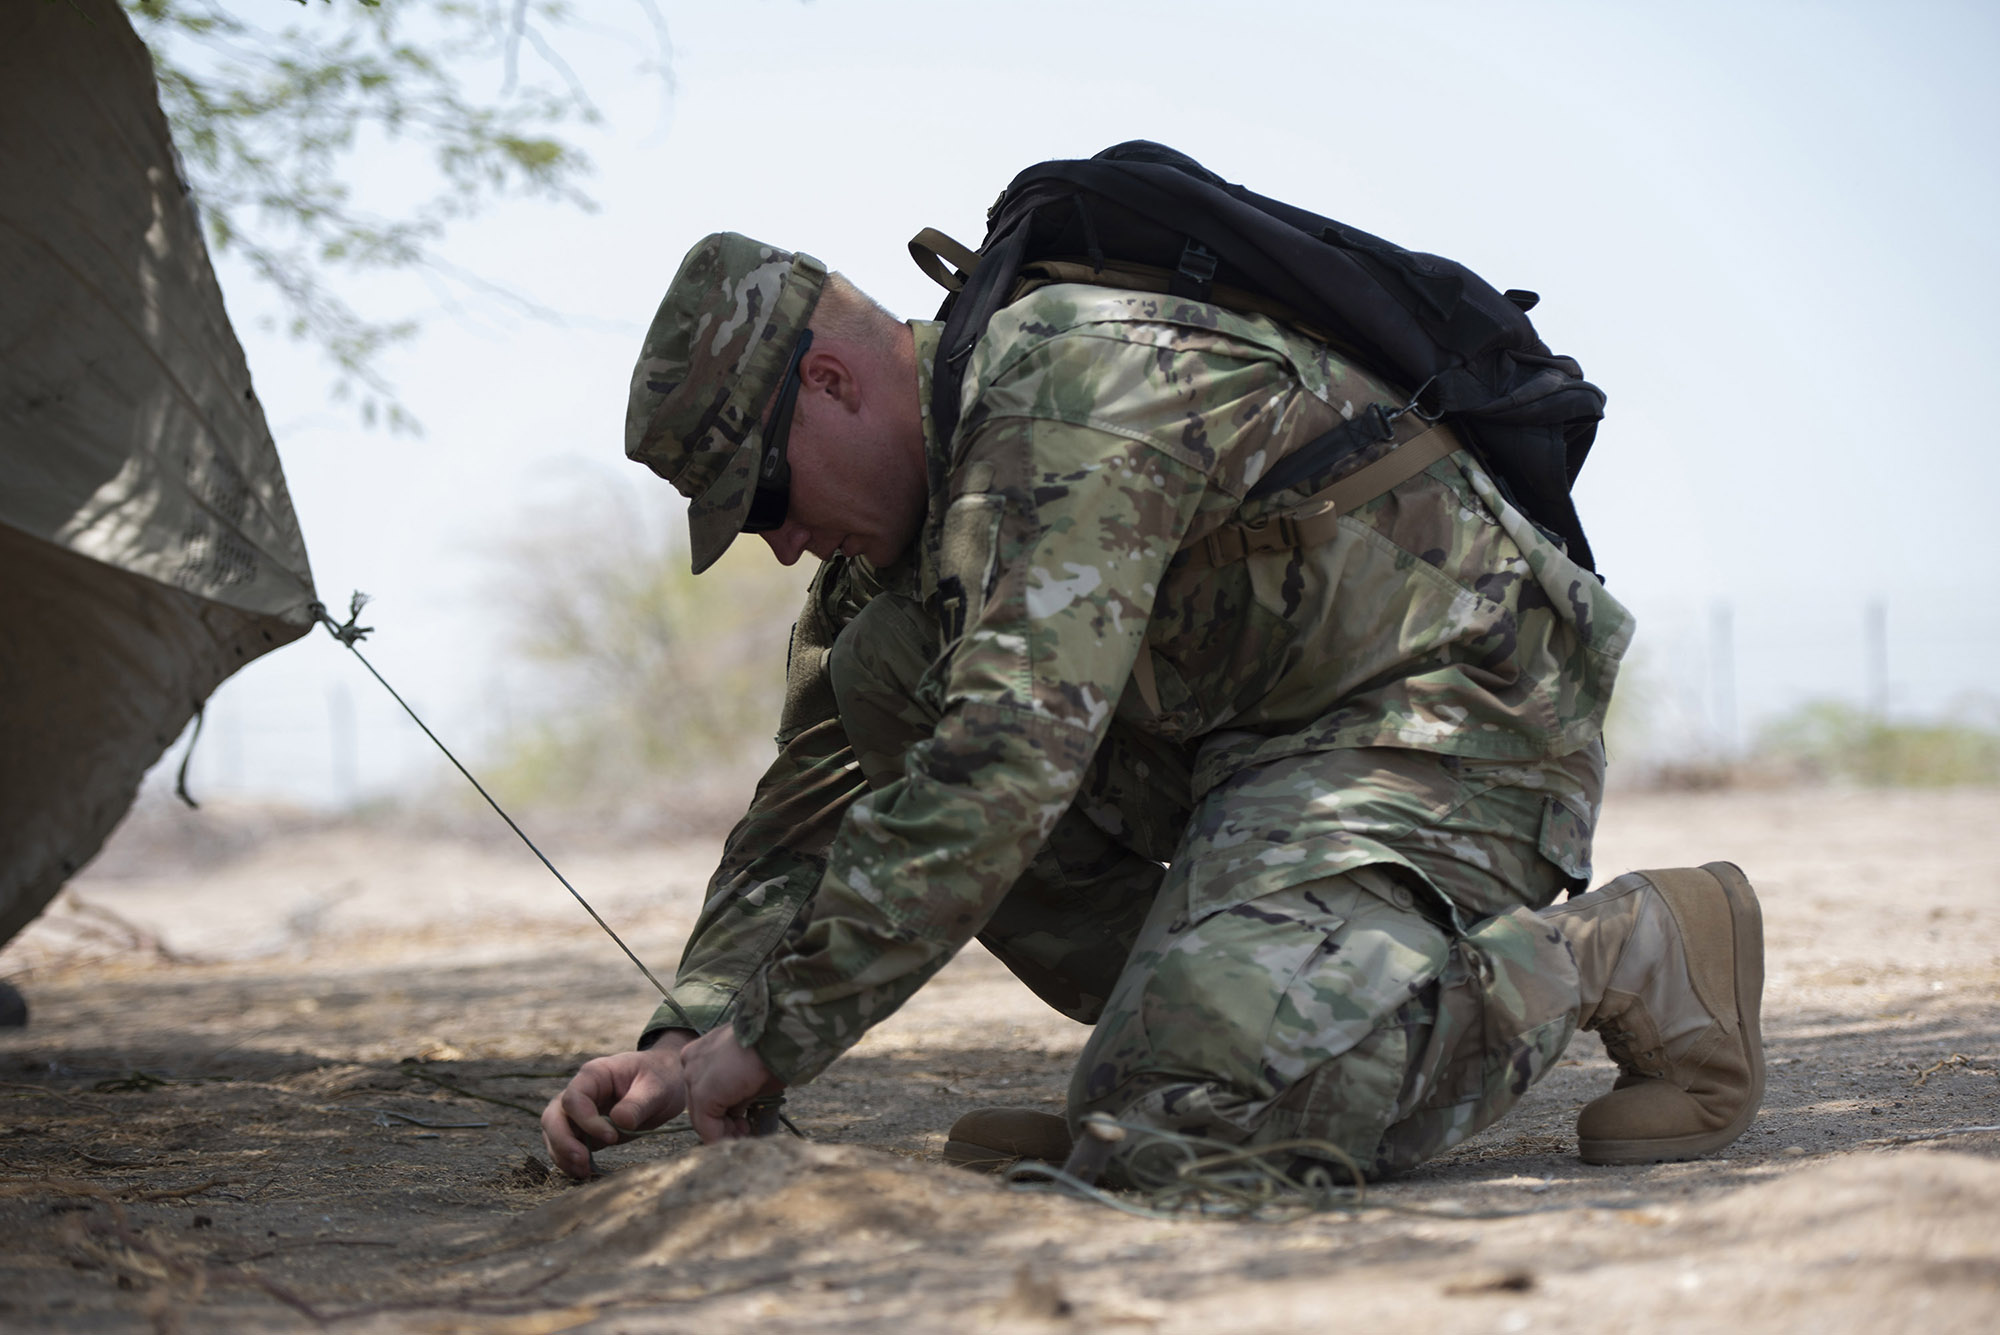 U.S. Army Spec. Killian Tooke, a radar repairer with 3rd Battalion, 133rd Field Artillery Regiment, Texas National Guard, ties down a poncho liner while creating a shade shelter during survival skills training on Camp Lemonnier, Djibouti, Oct. 13, 2018. During this training, Tooke completed various tasks such as constructing a shelter, finding alternative water sources and signaling for rescue. (U.S. Air National Guard photo by Master Sgt. Sarah Mattison)